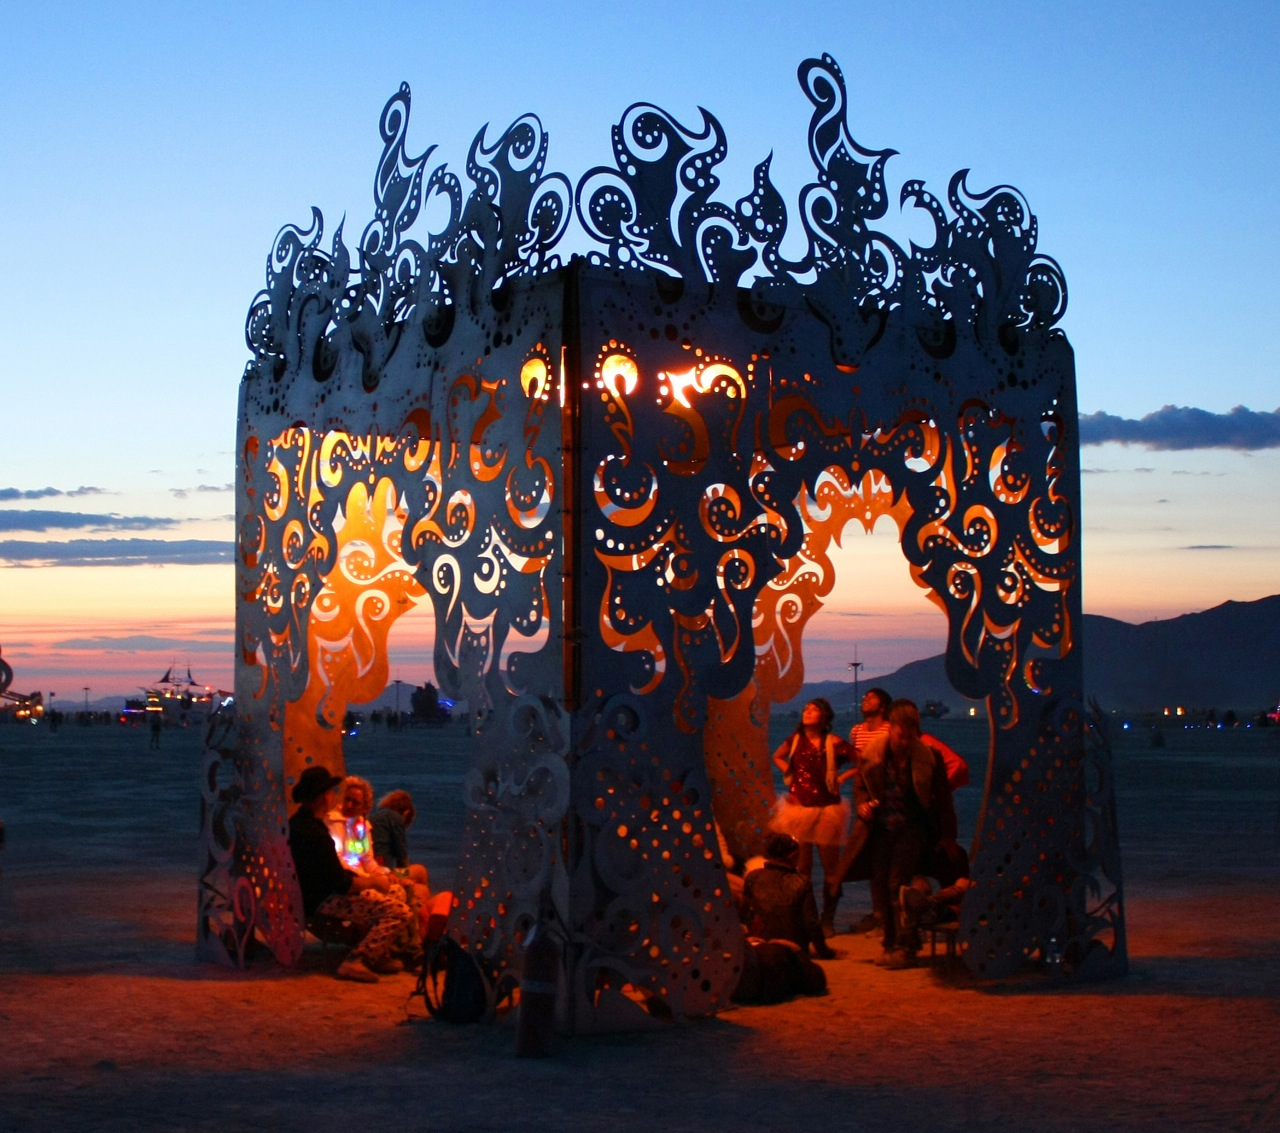 Burning Man 2009 Poetic Kinetics Holding Flame